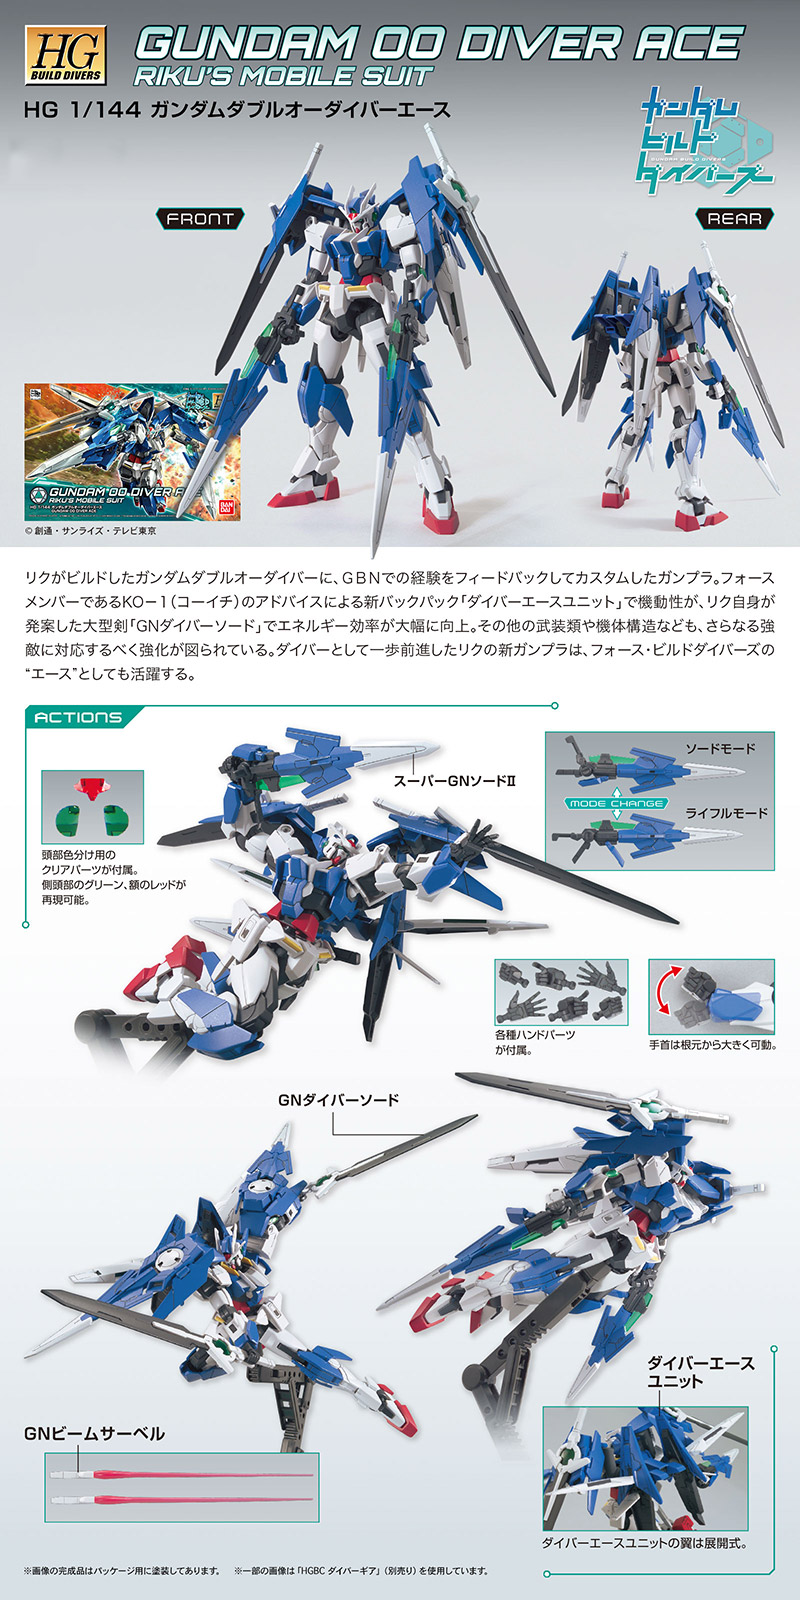 HGBD Gundam Build Diver Ace Desctiption